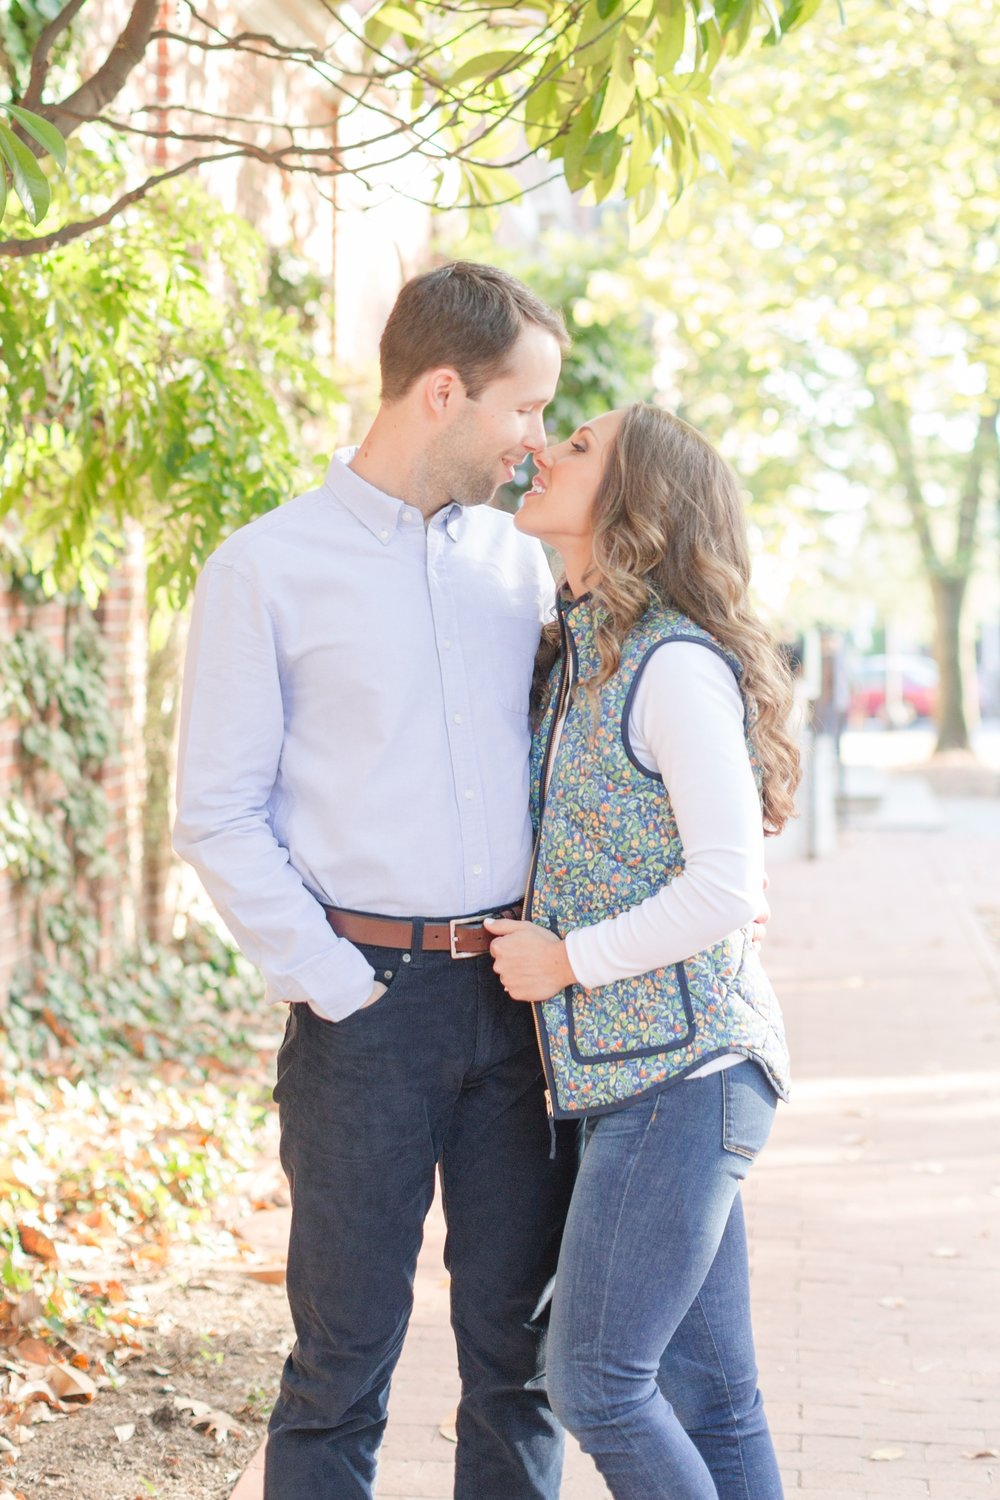 Emily Schroeder & Brian Malat Engagement-7_Georgetown-DC-engagement-virginia-engagement-photographer-anna-grace-photography-photo.jpg